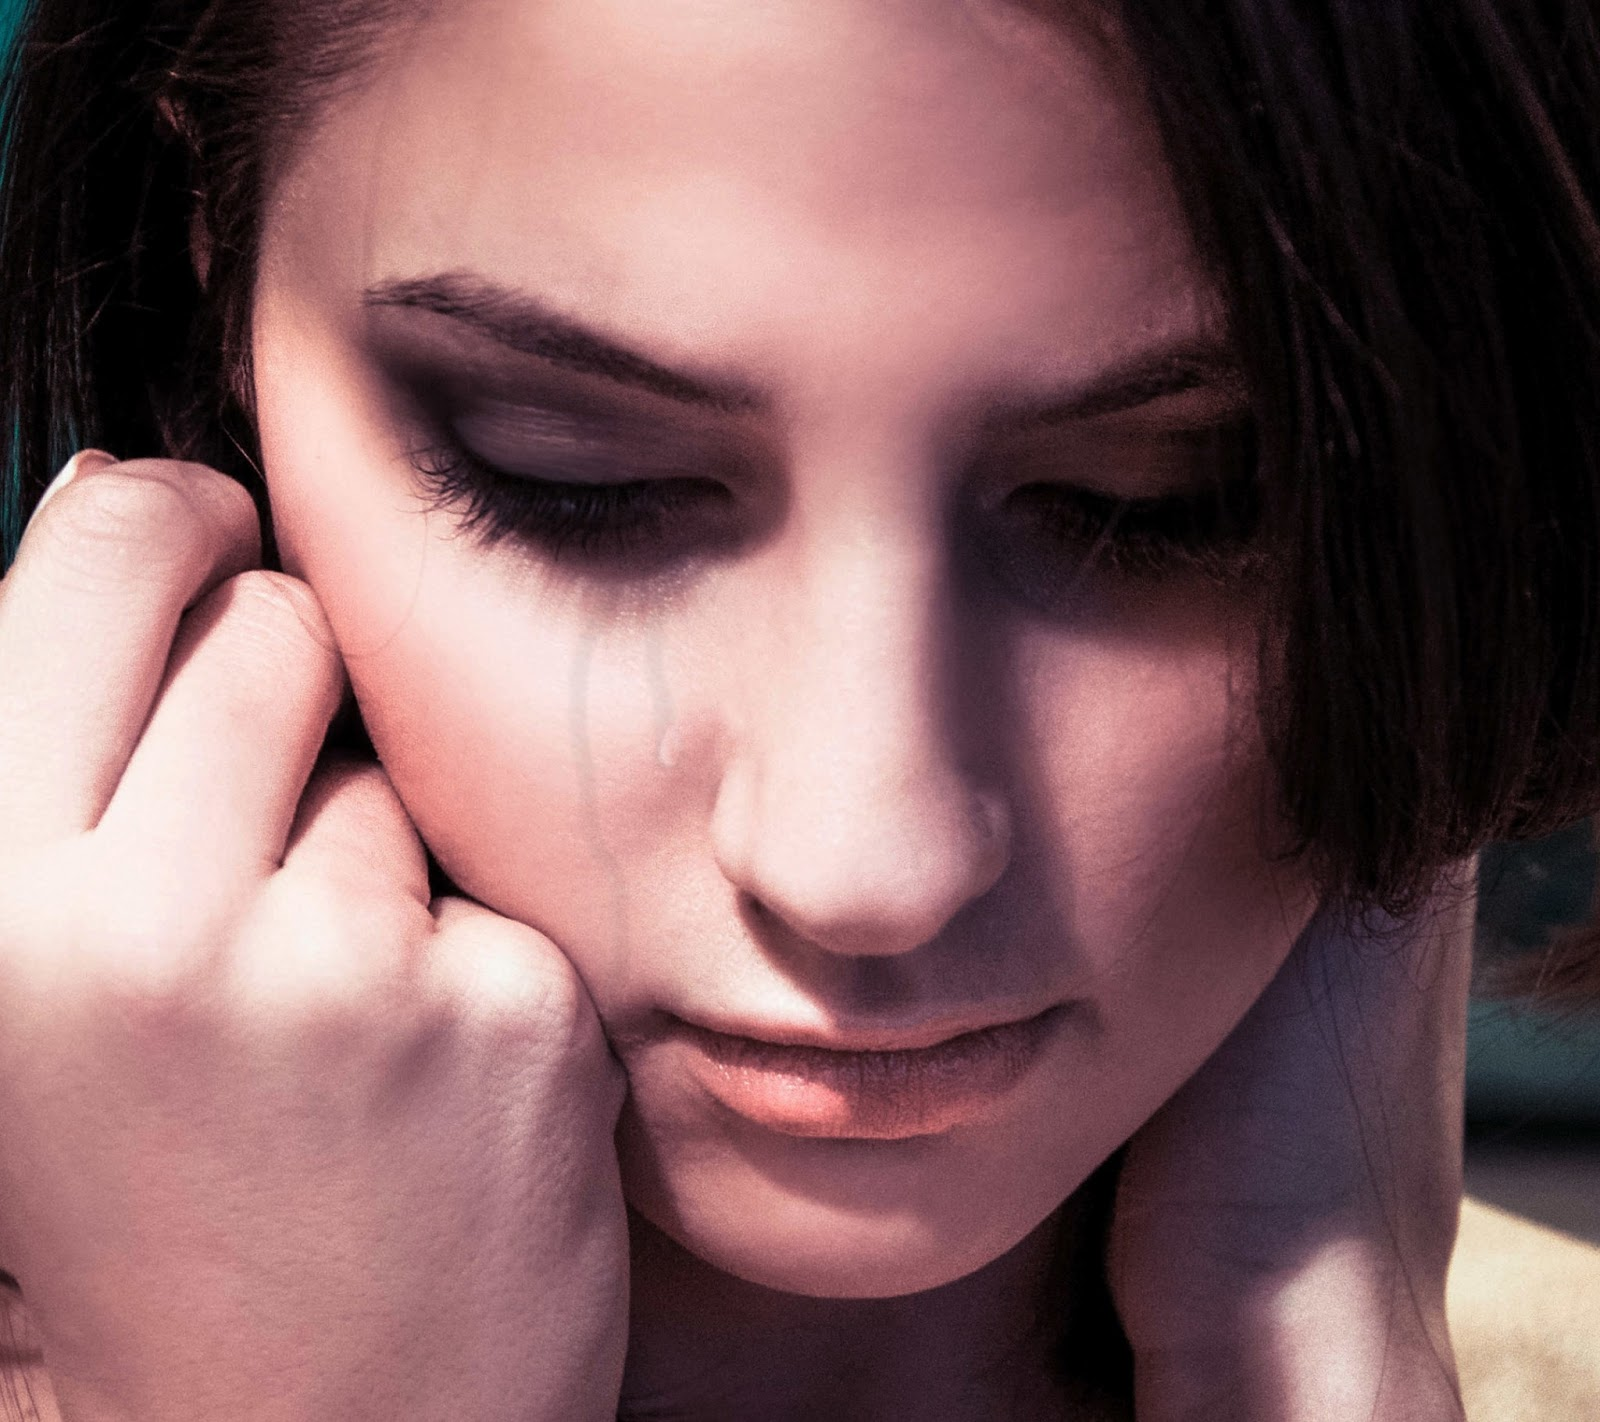 Wallpaper desk crying girl wallpaper crying girl - Sad girl pictures crying ...